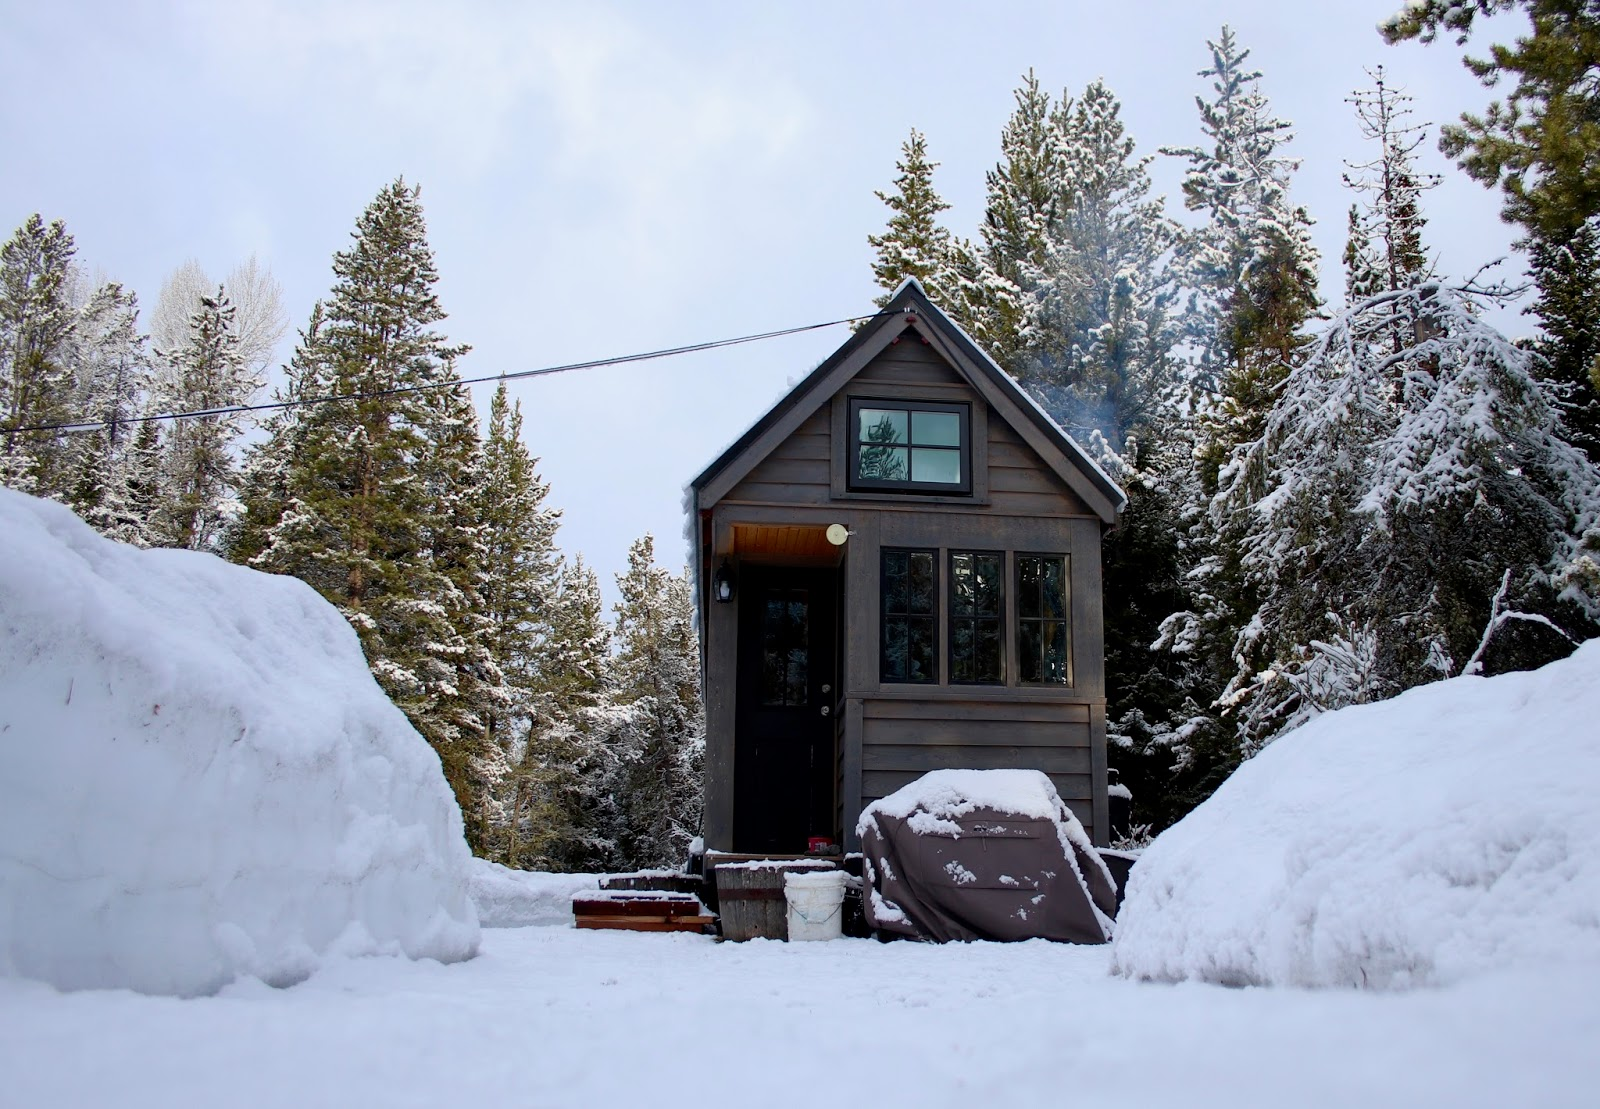 wood cabin in winter, design ideas